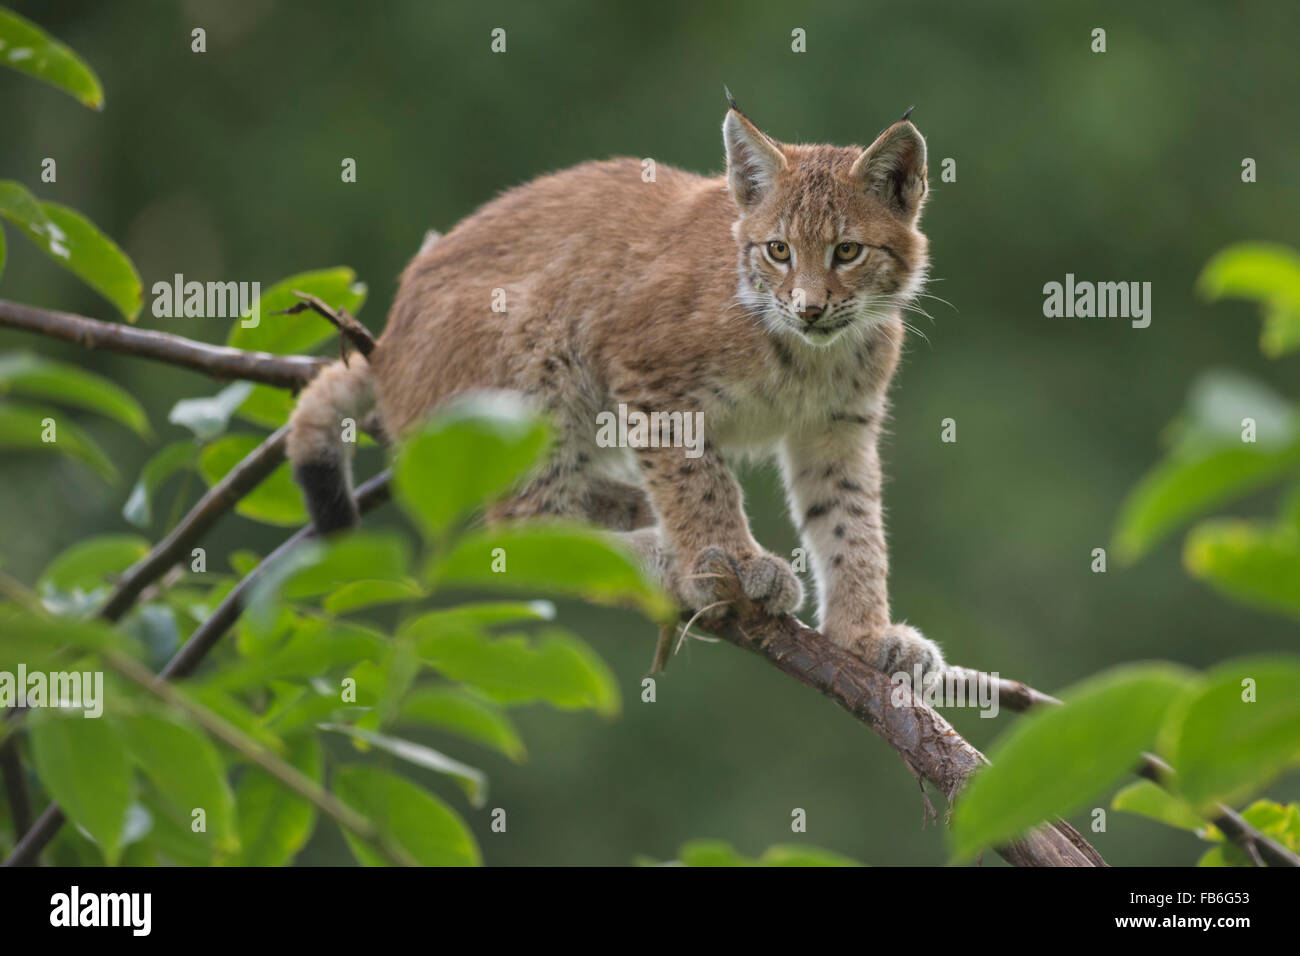 Cute cub of Eurasian Lynx / Eurasischer Luchs ( Lynx lynx ) sits on a thin branch, looks concentrated. - Stock Image